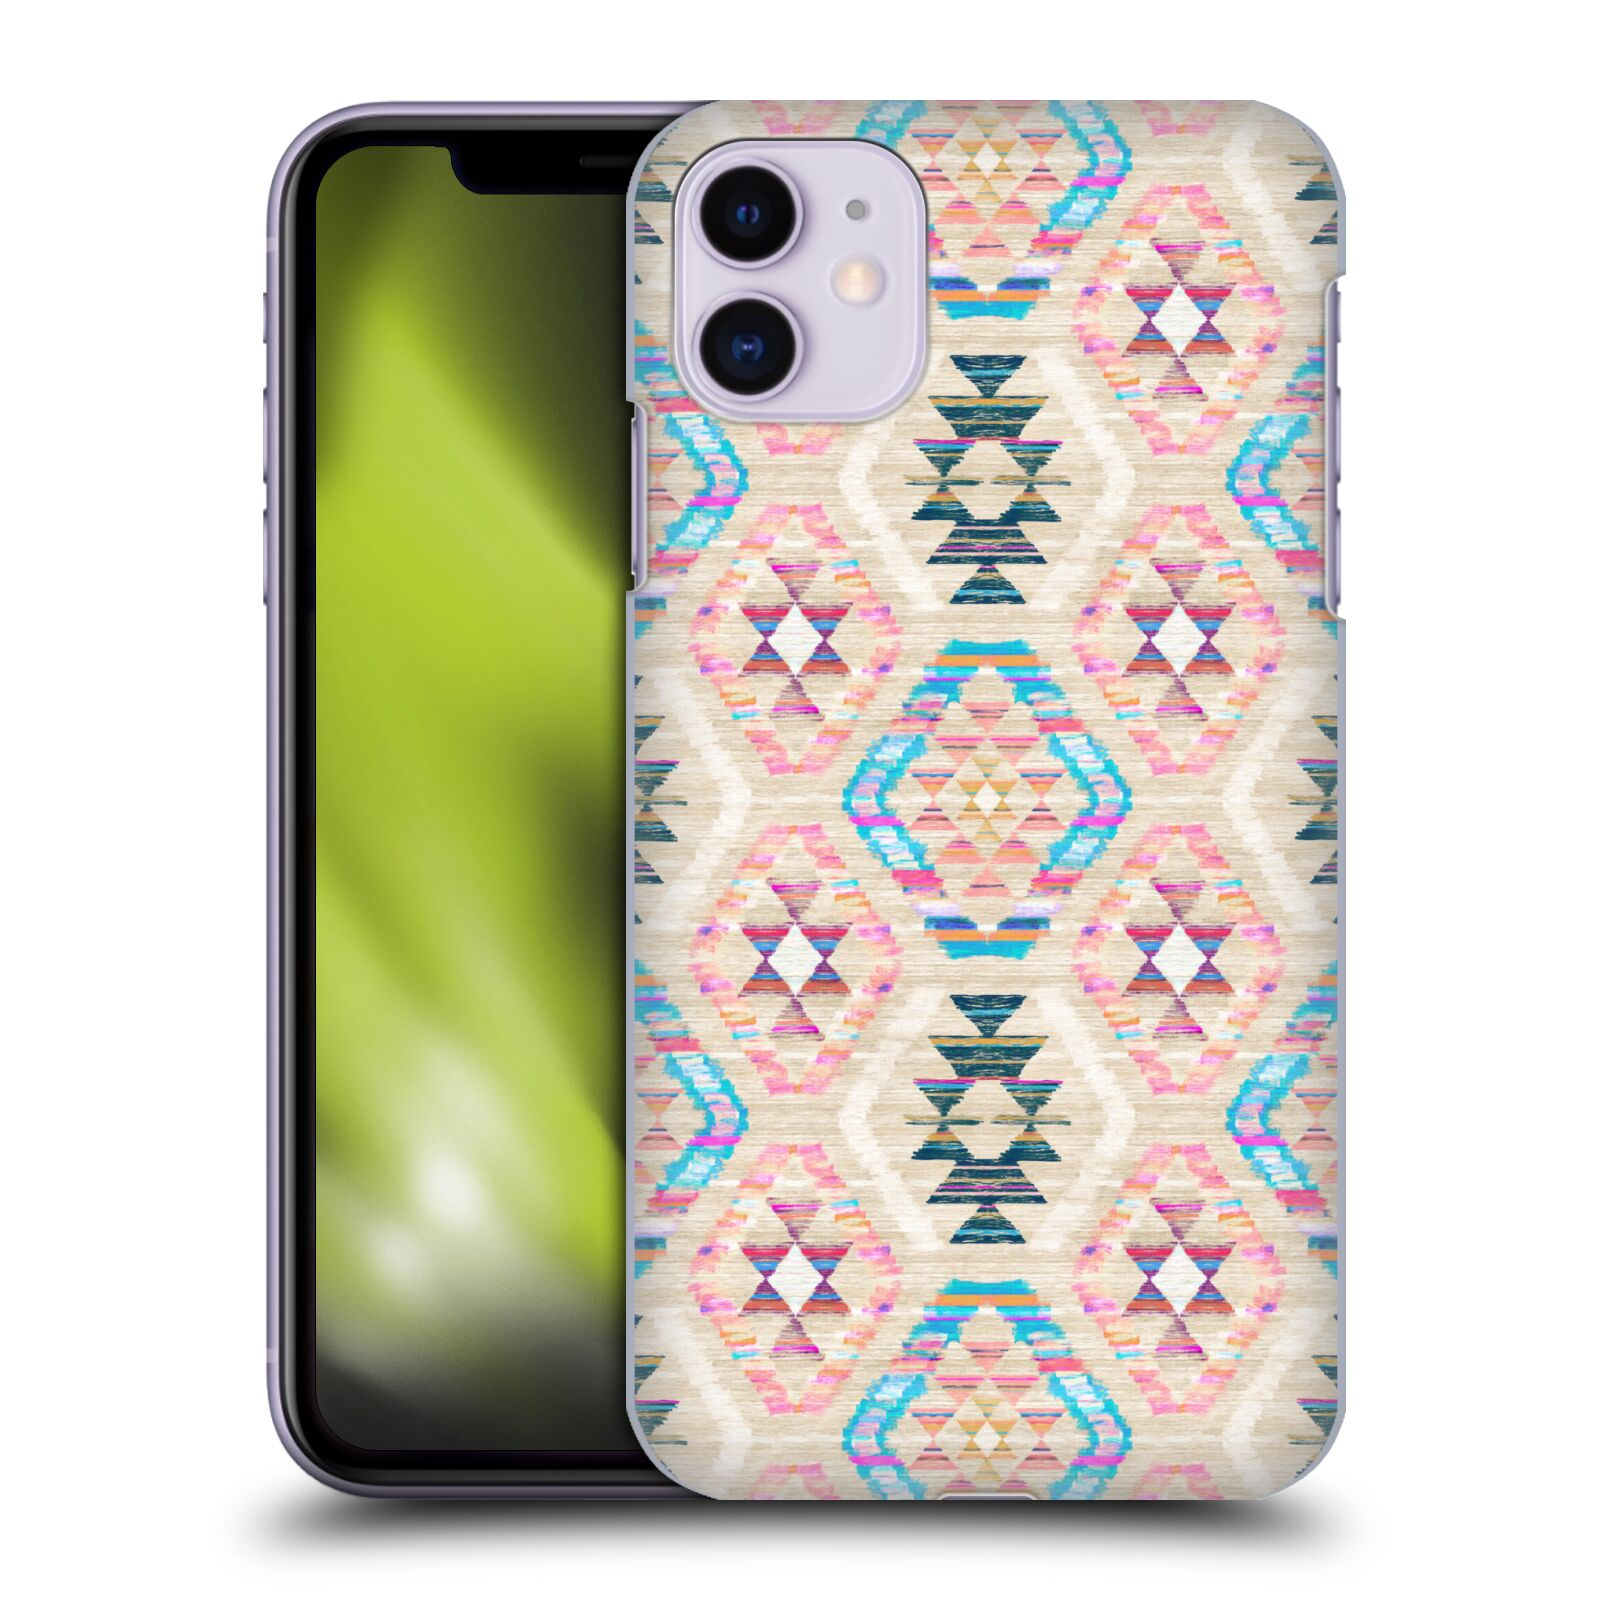 Official Micklyn Le Feuvre Patterns 8 Woven Textured Pastel Kilim Case for Apple iPhone 11